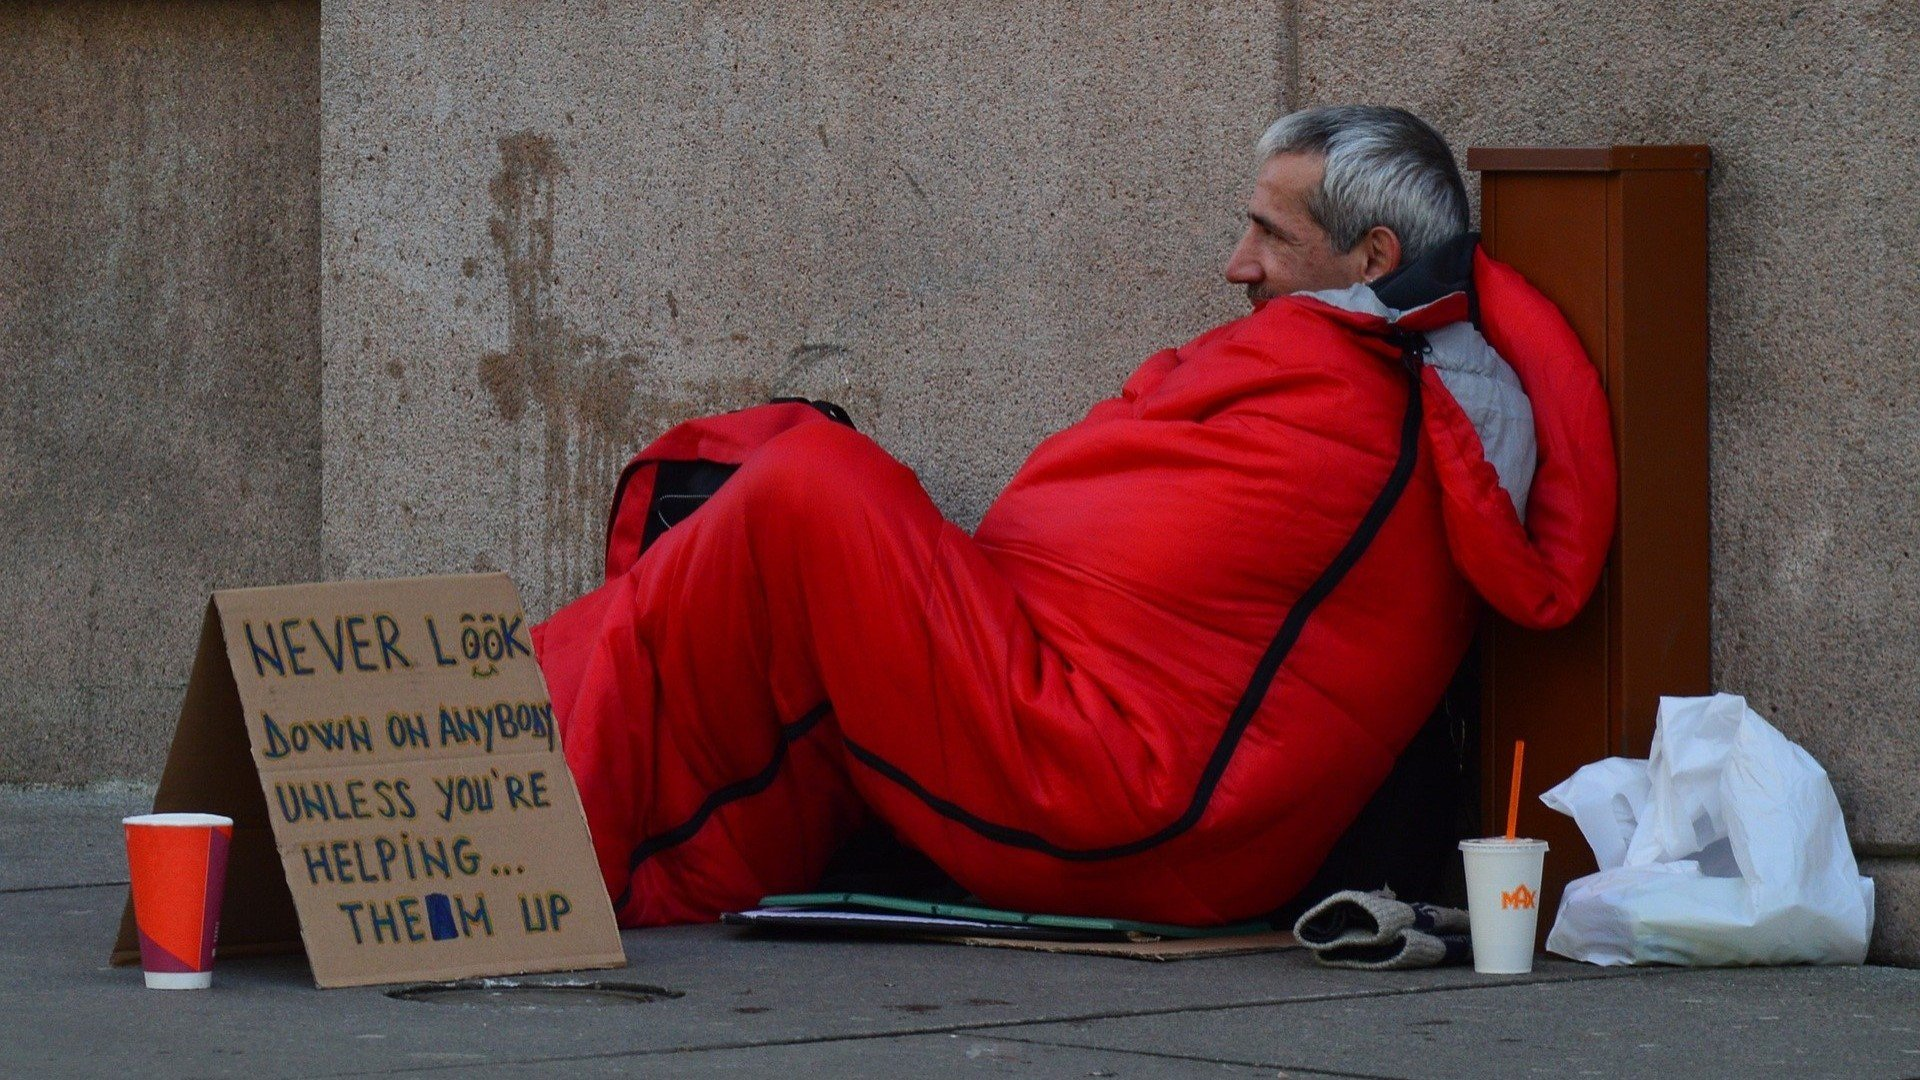 Oxford City Council secures hotel rooms for rough sleepers amid coronavirus outbreak